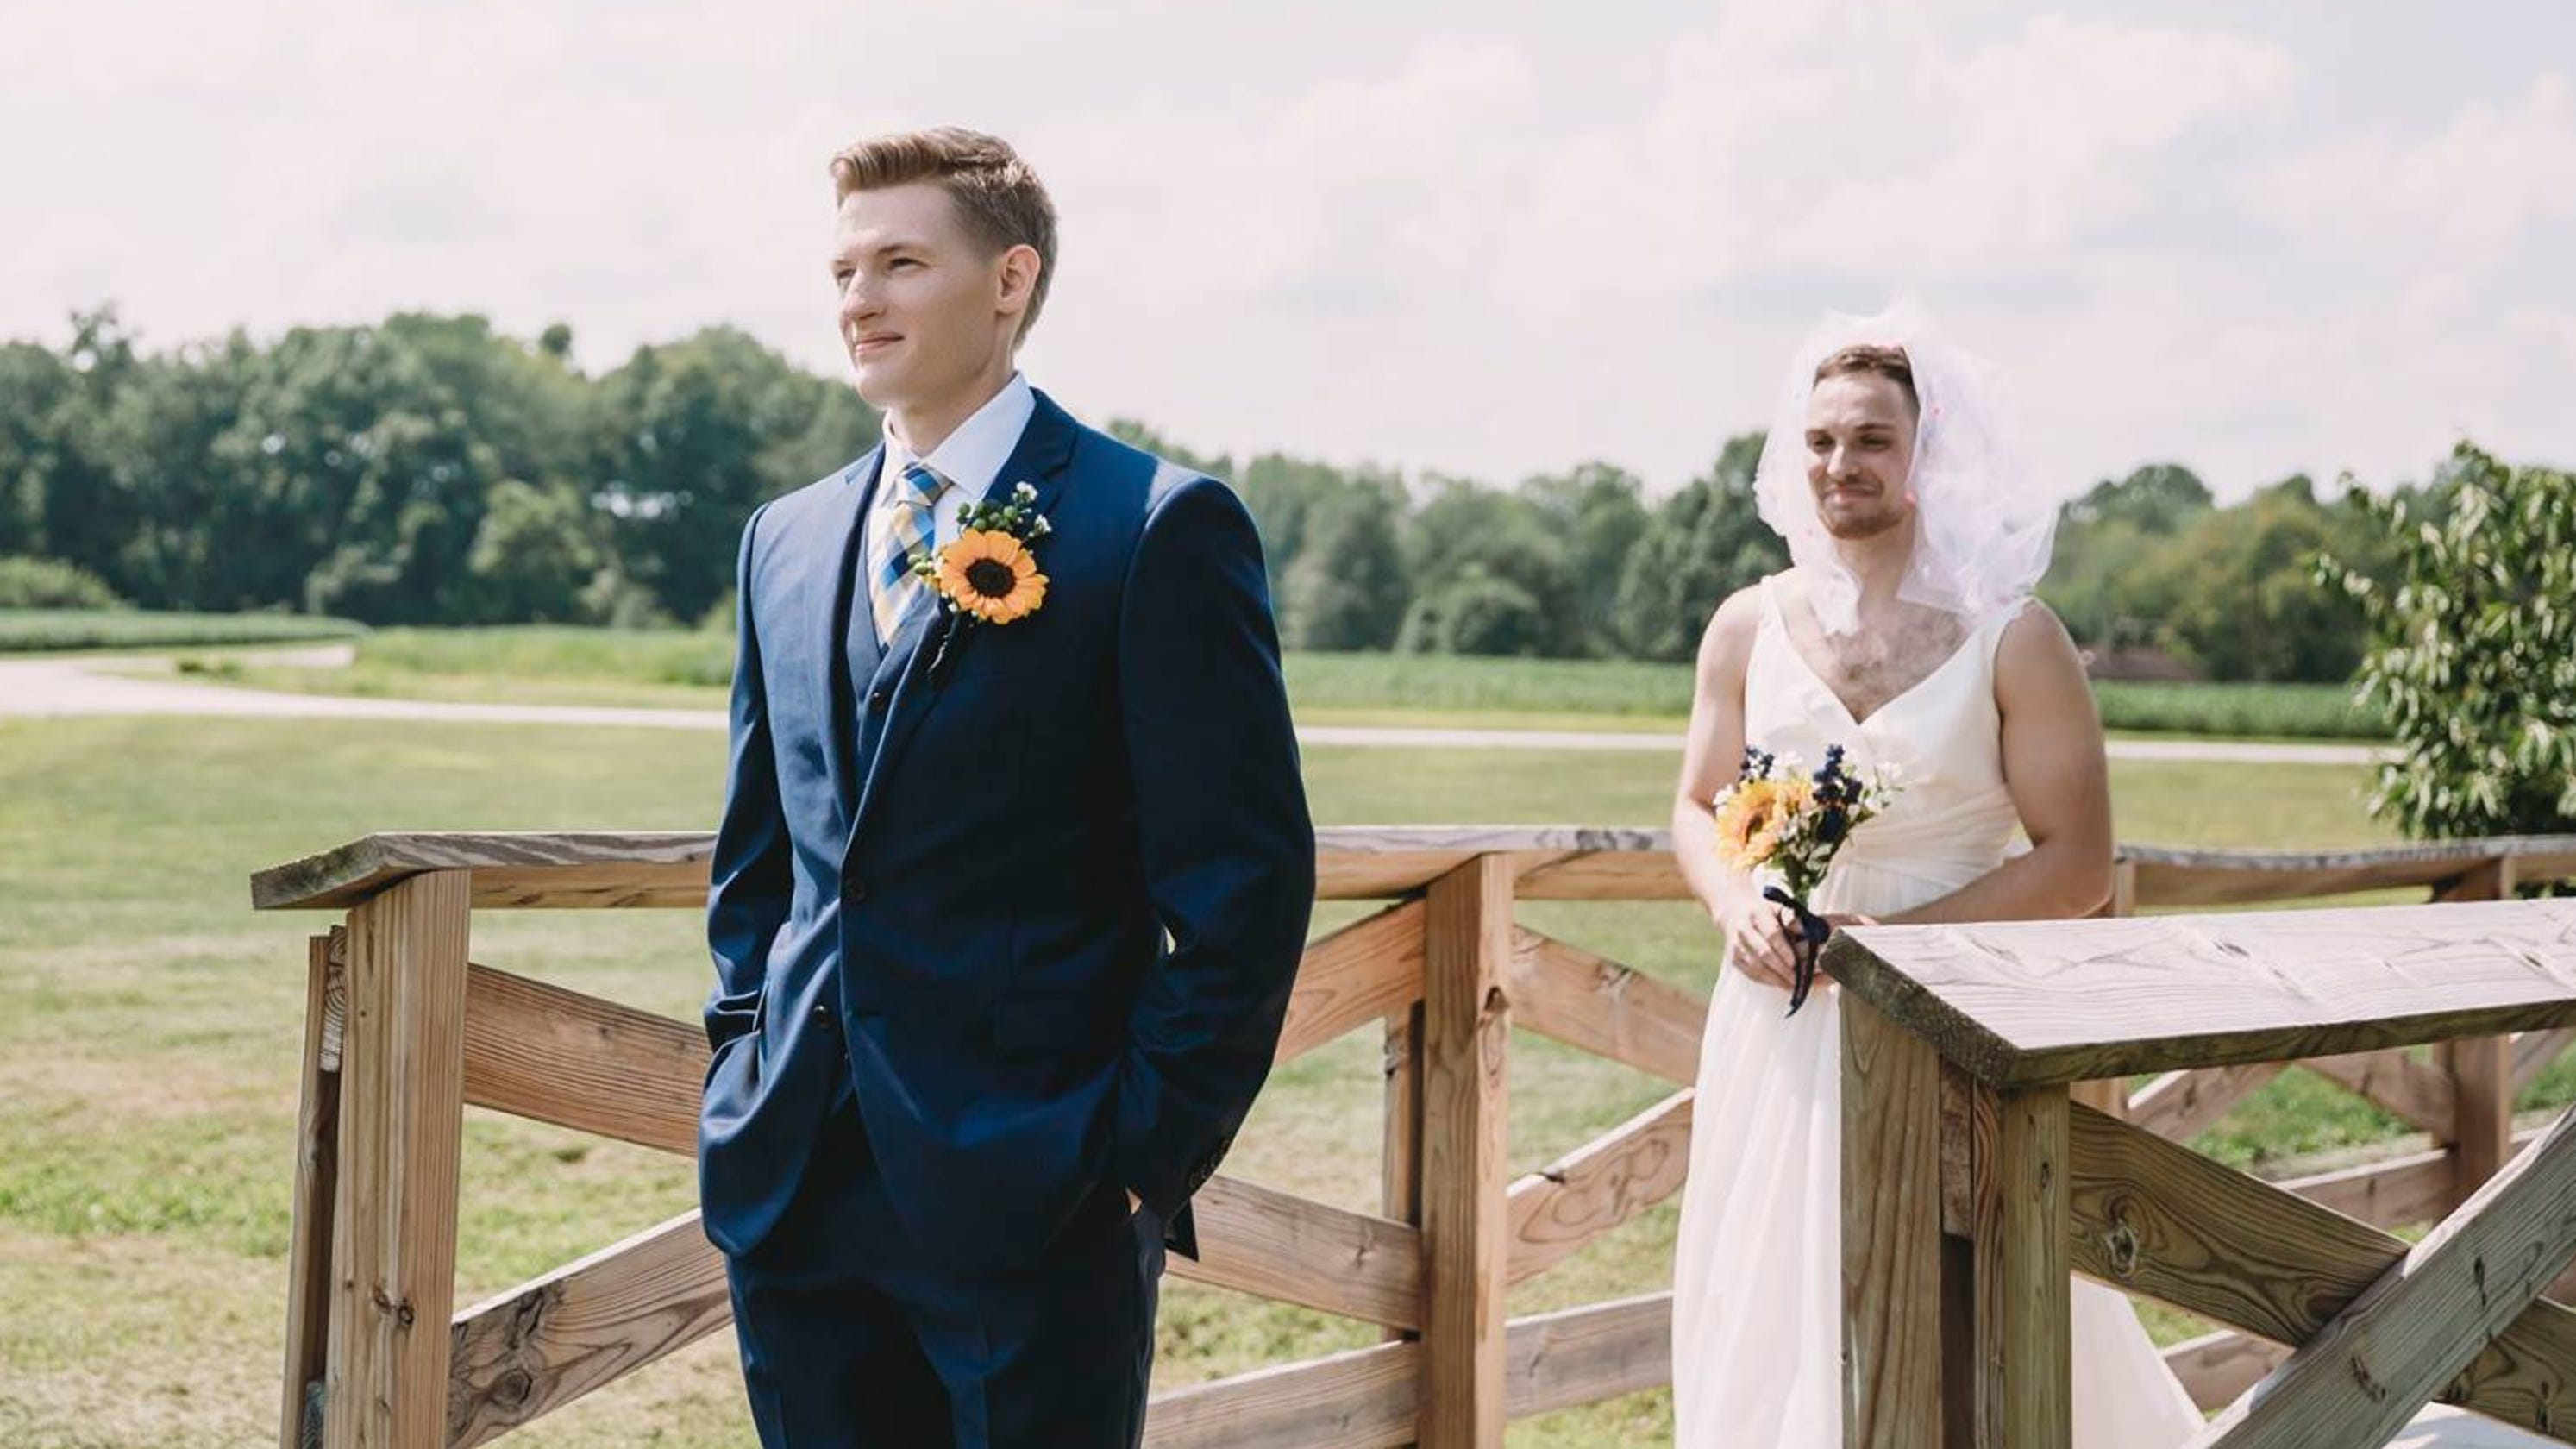 First Look Wedding Photos Capture Bride's Amazing Prank On